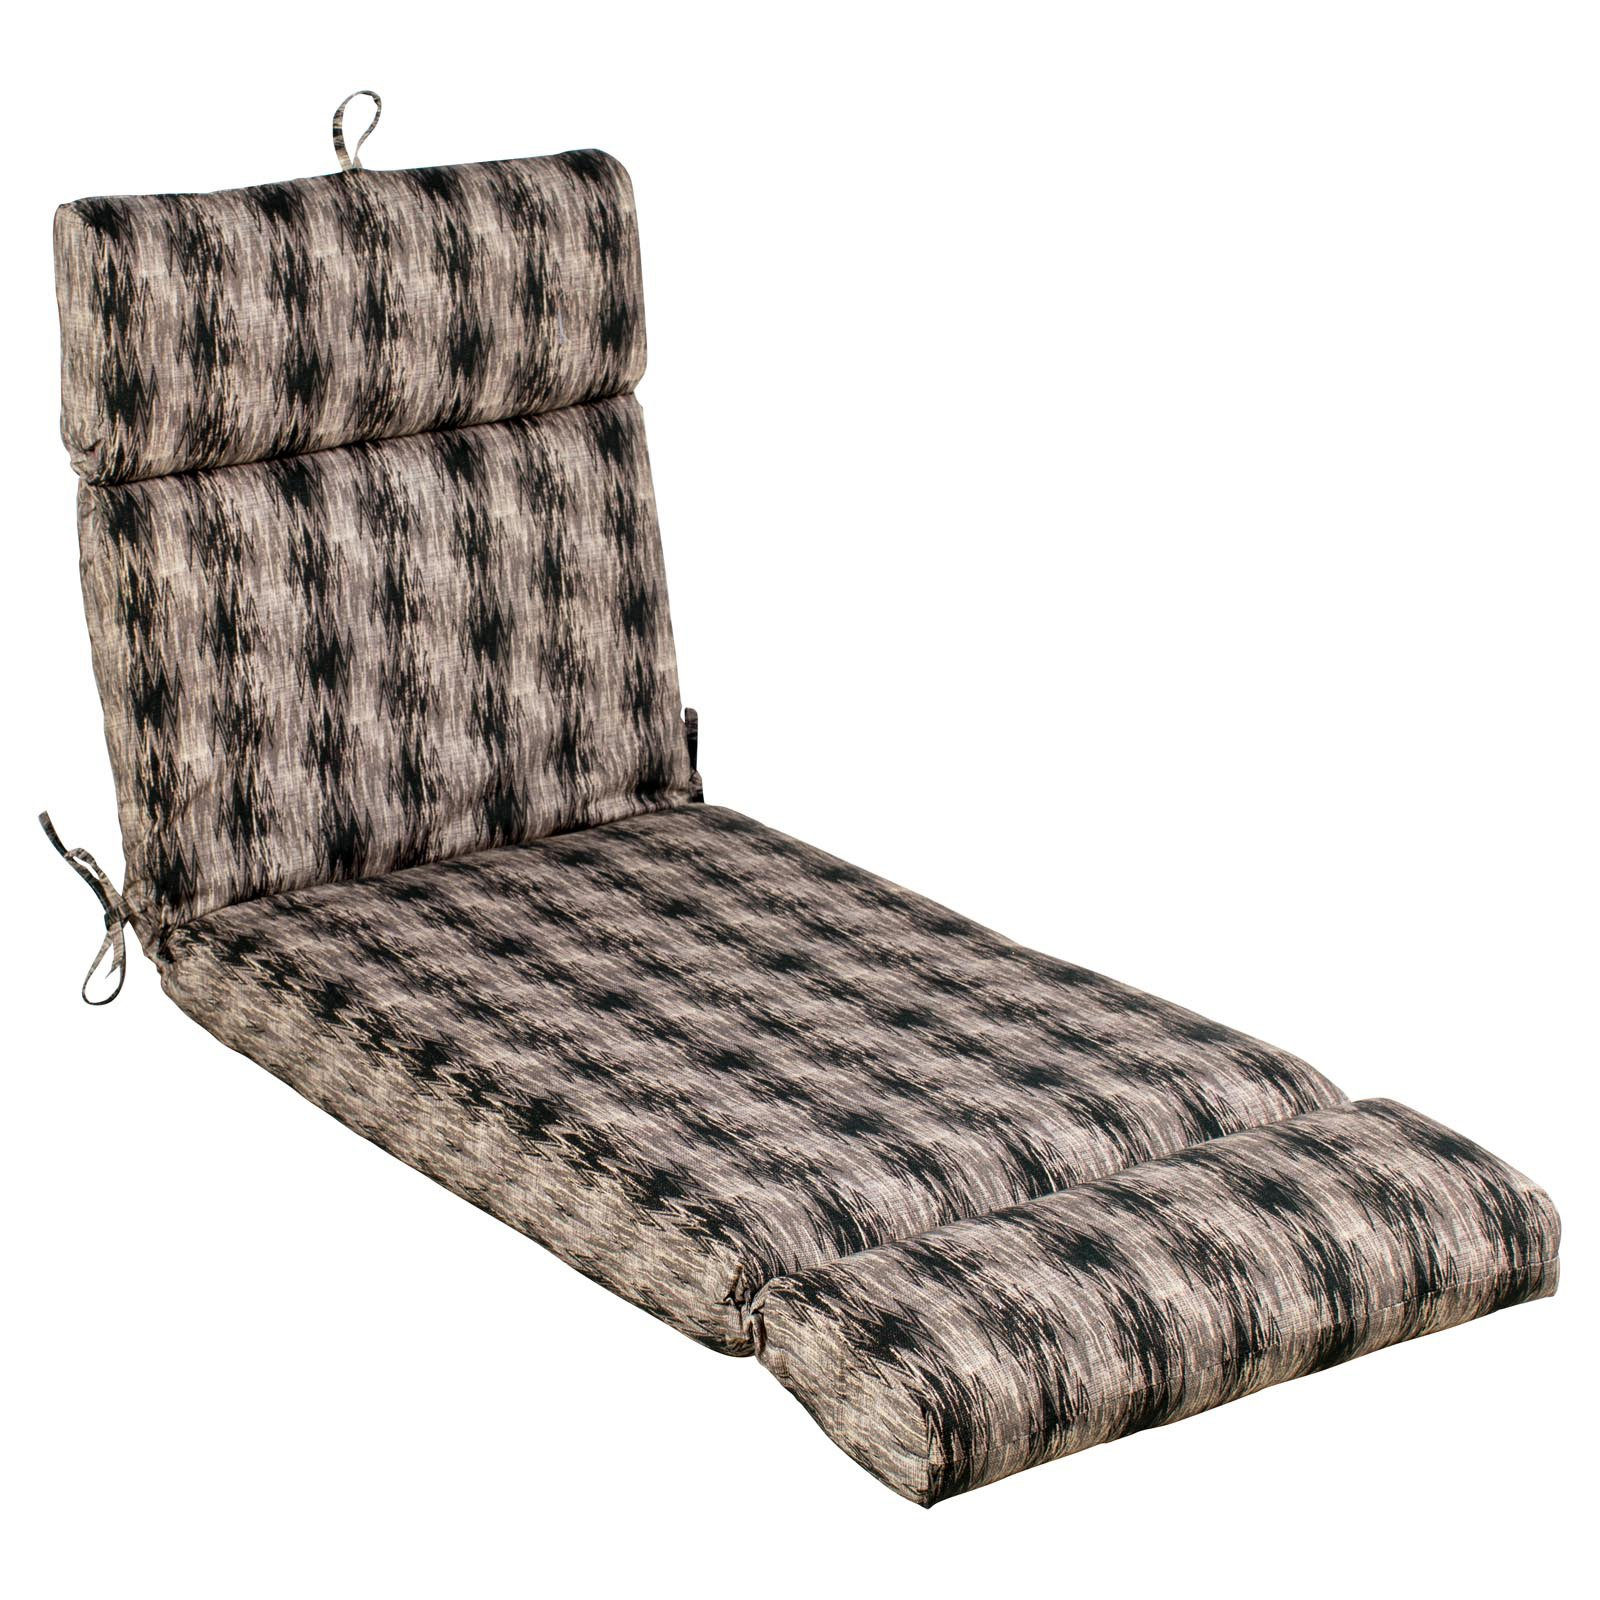 Coral Coast Mudcloth French Edge Outdoor Chaise Lounge Cushion